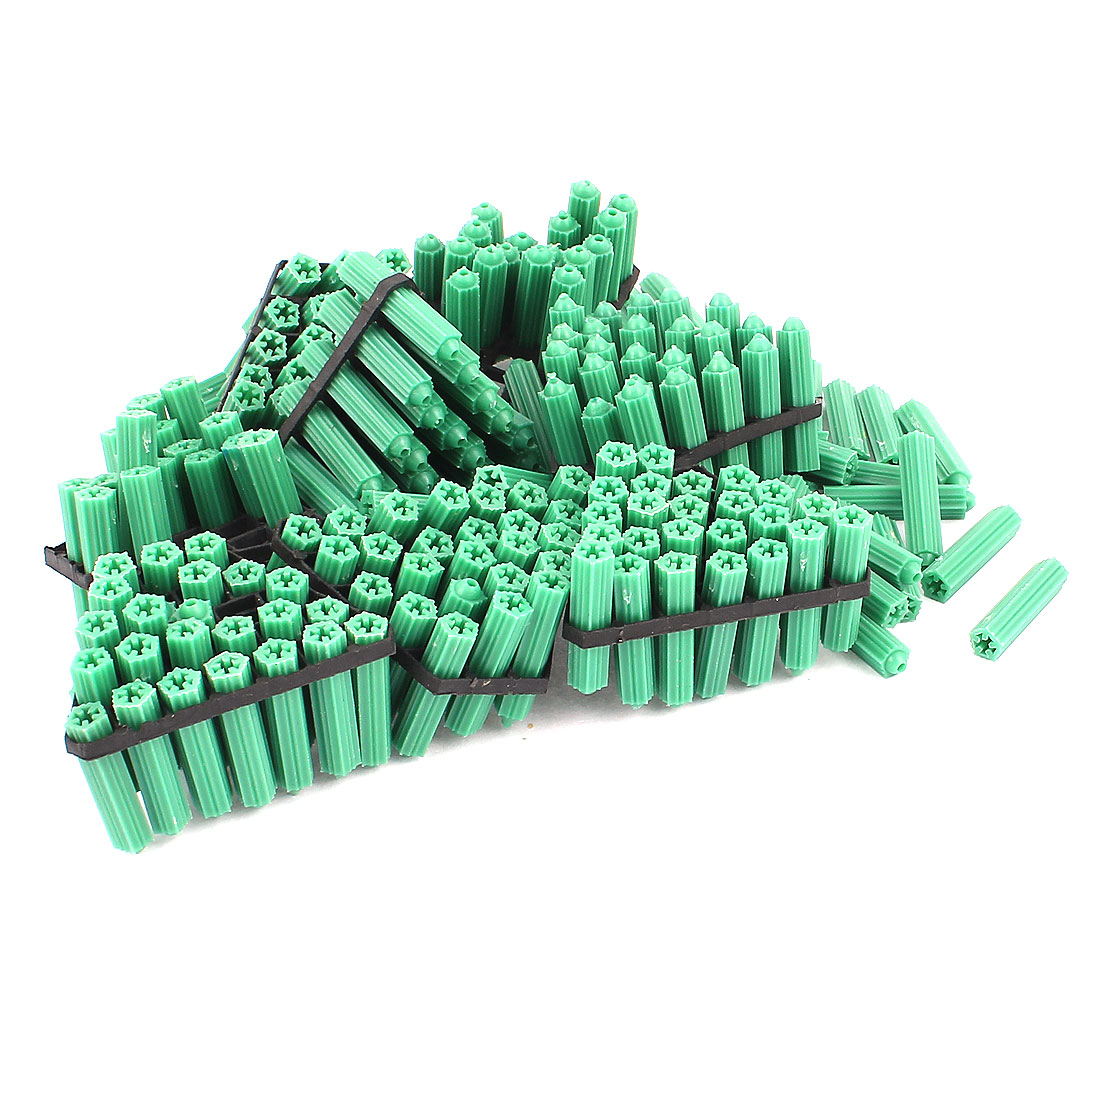 29mm x 7mm Plastic Screw Fixing Anchor Wall Stopper Fastener Green 250Pcs